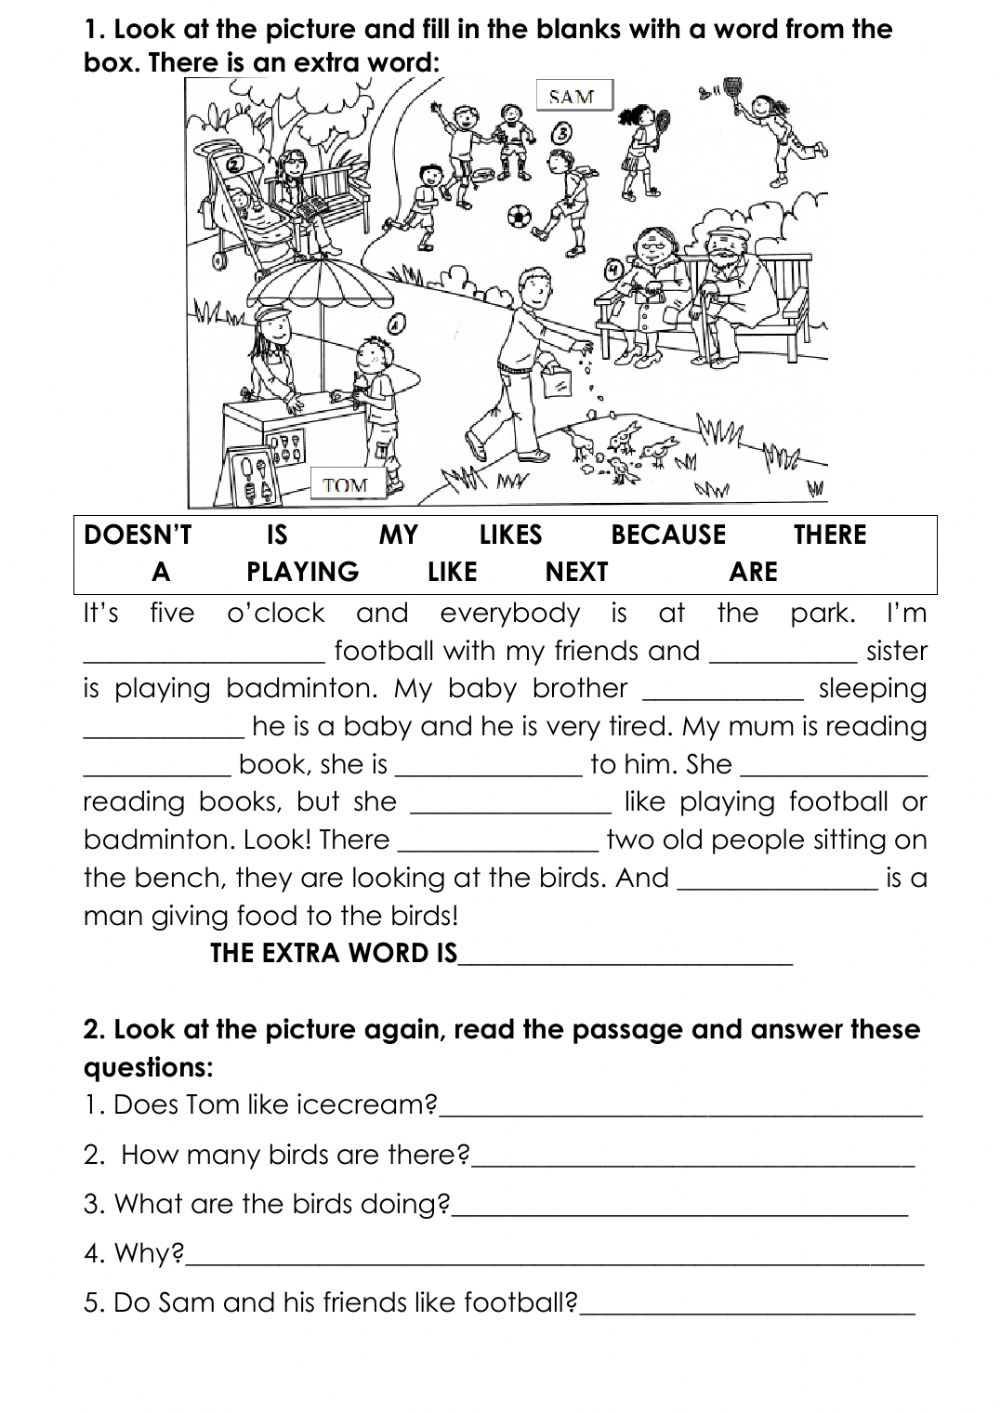 hight resolution of Cloze test for kids worksheet